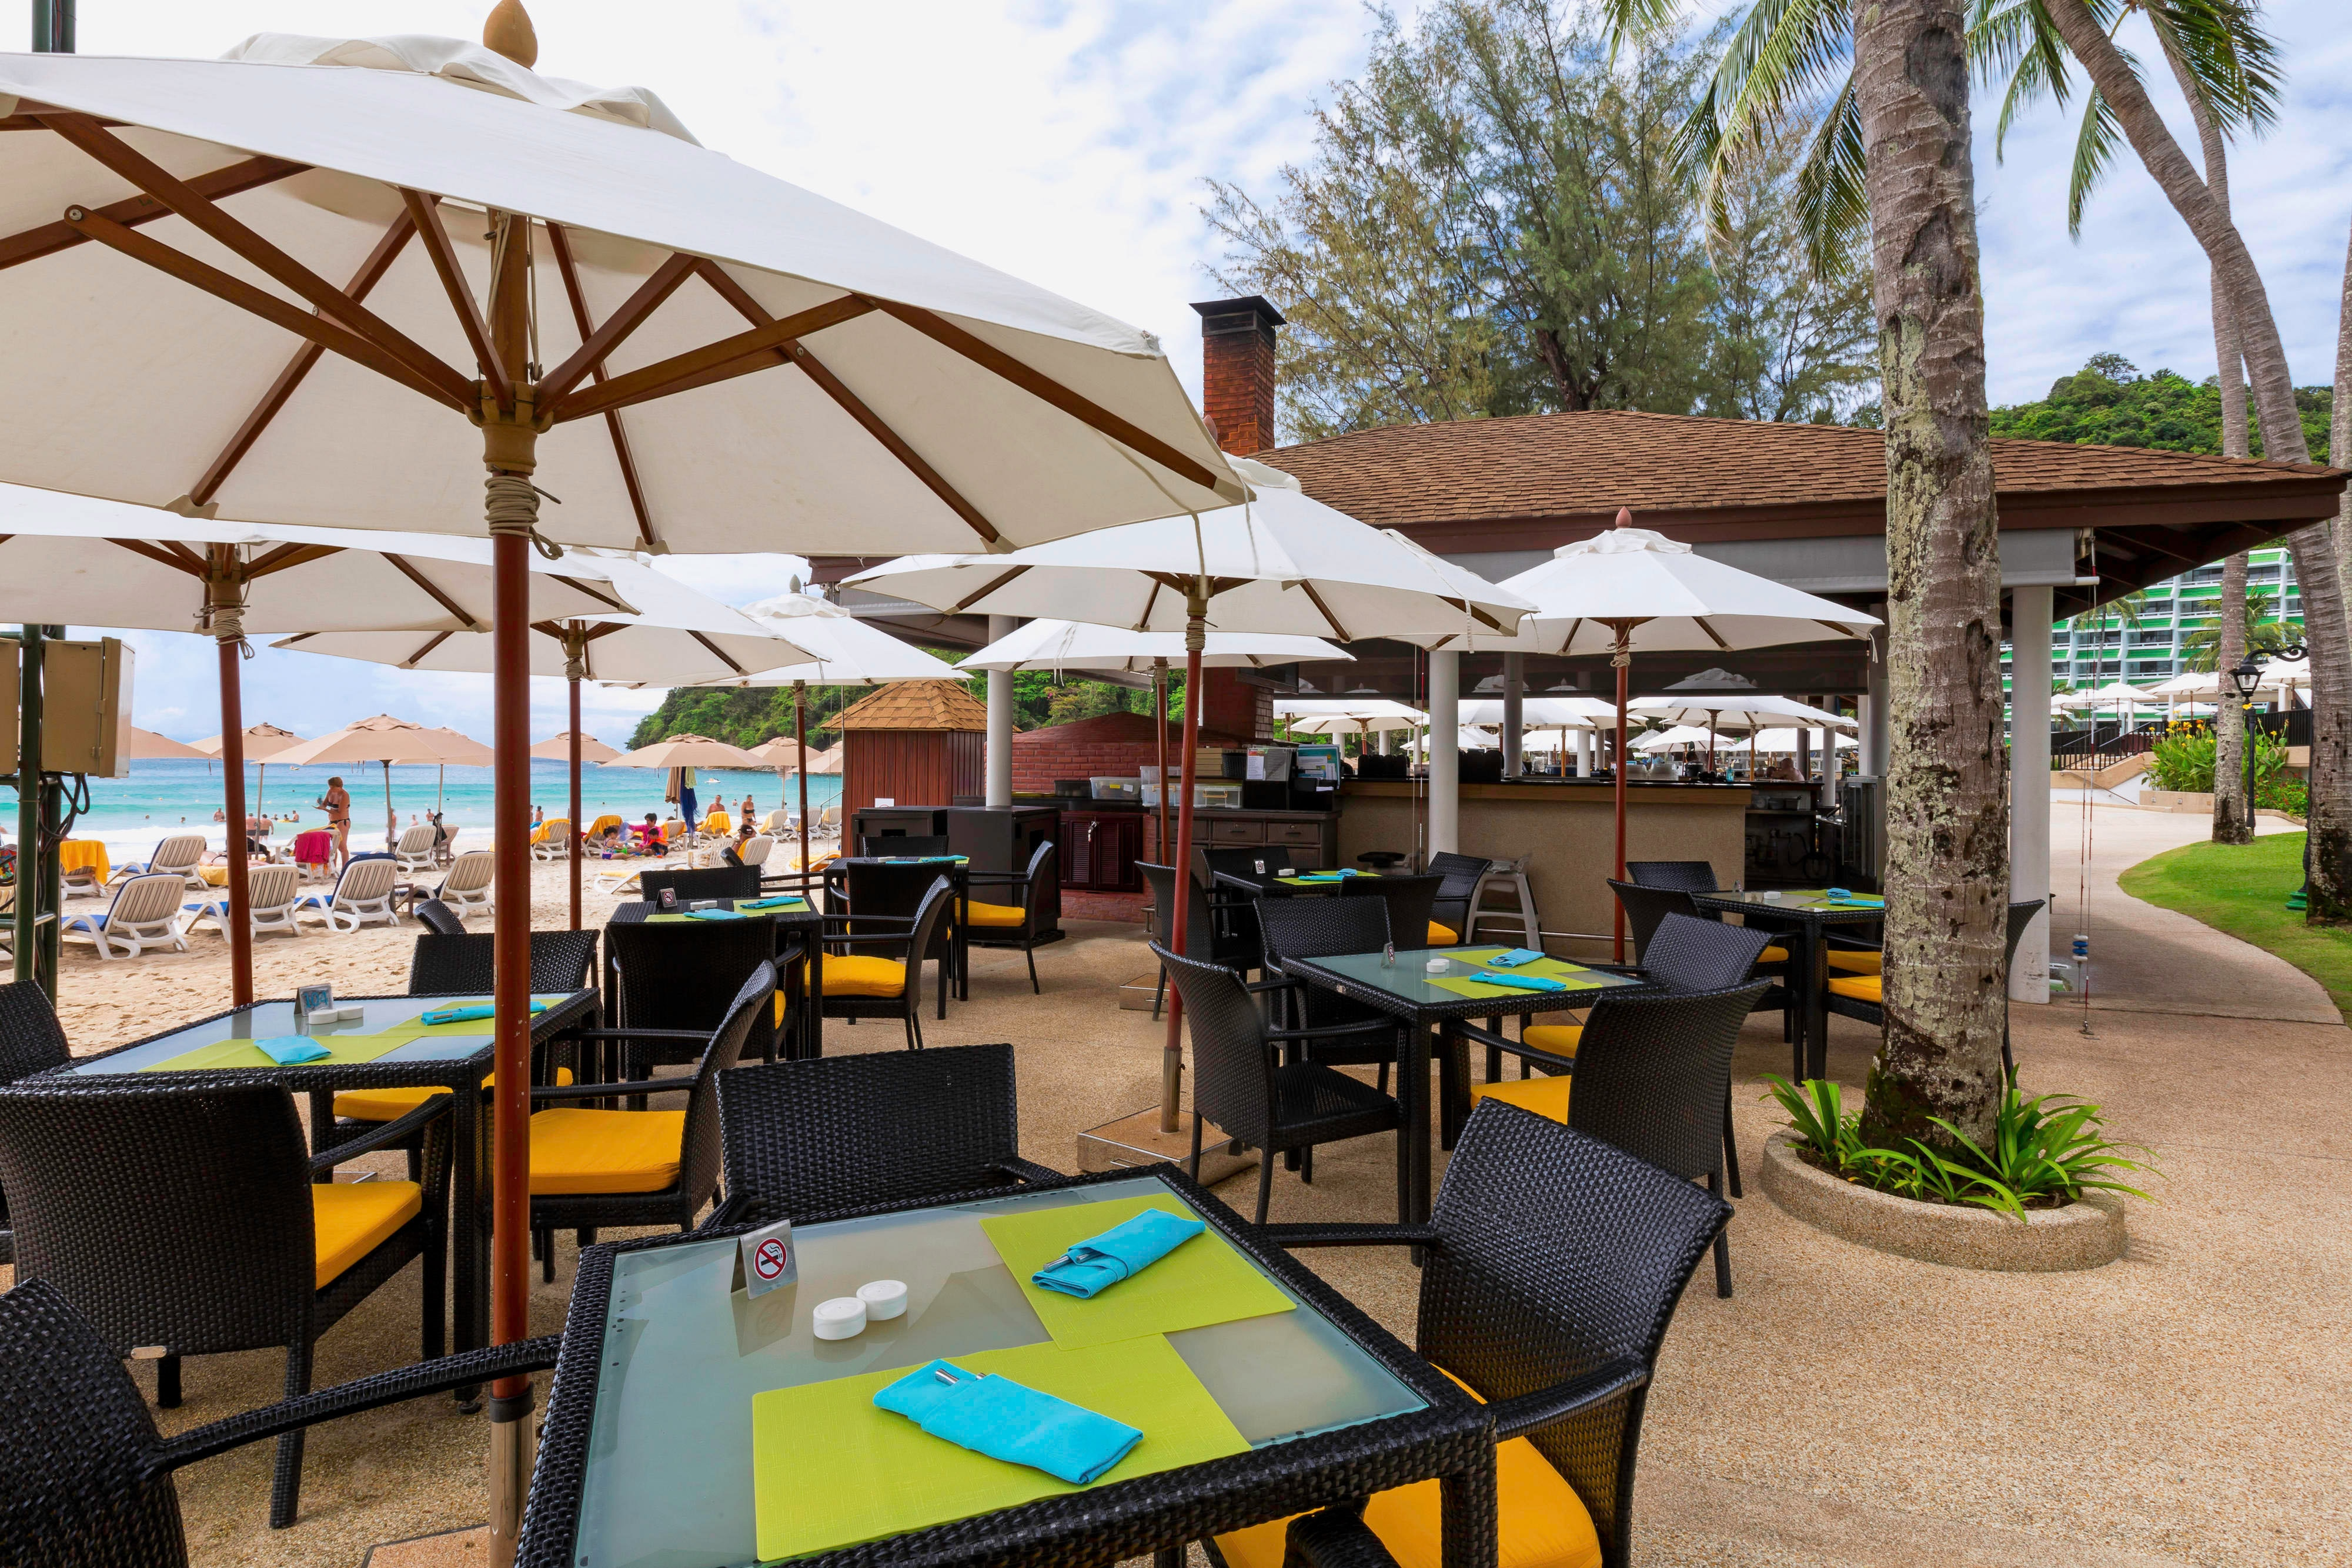 La Fiamma Beachside Pizzeria